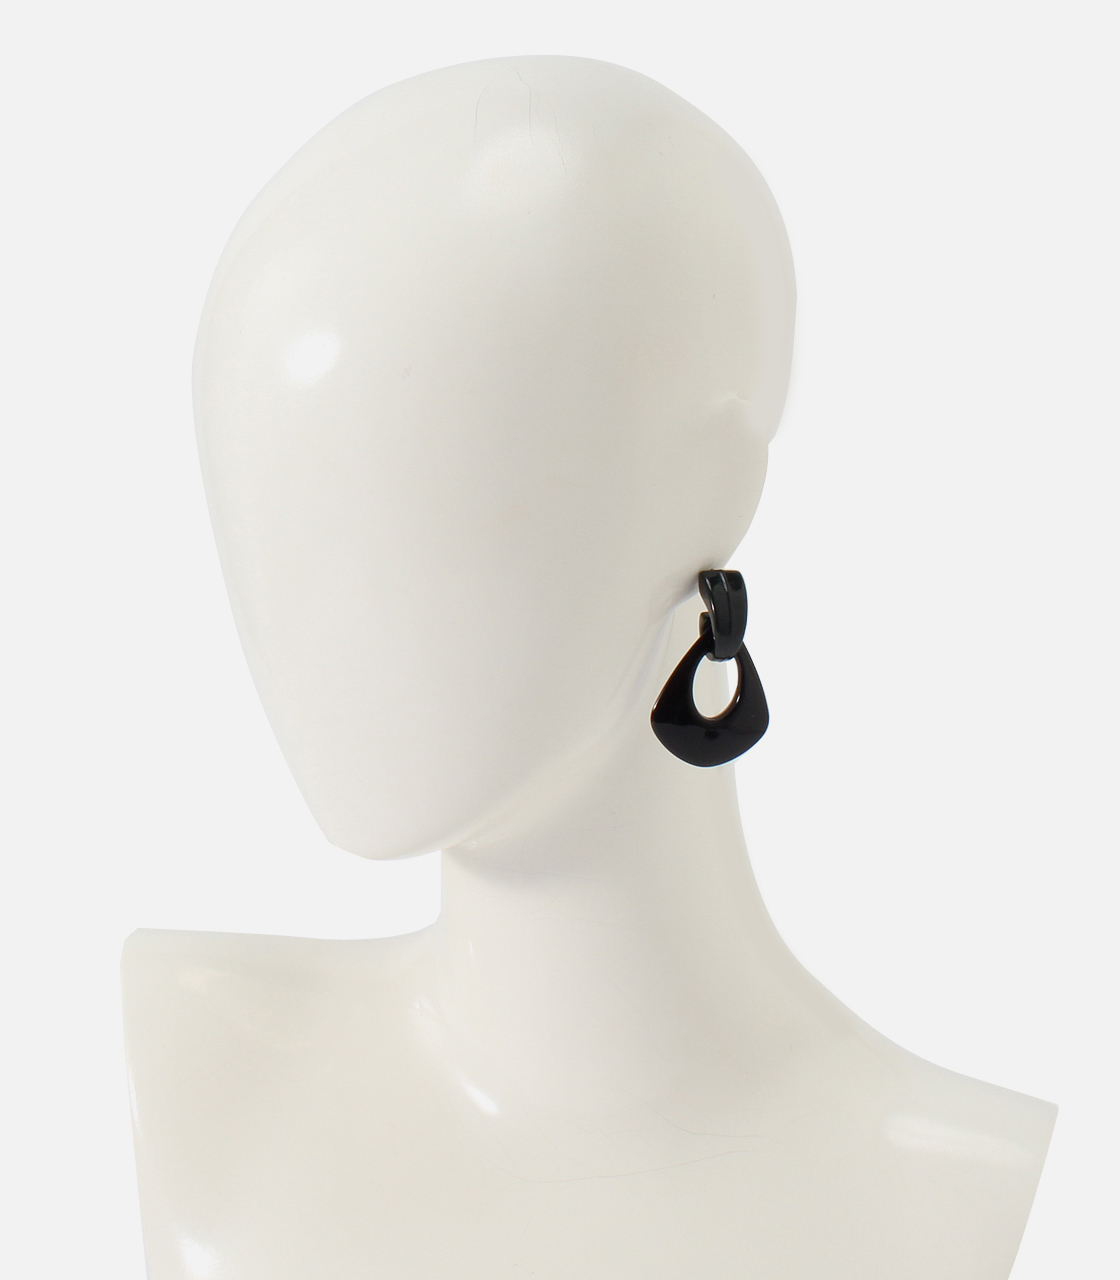 MARBLE EARRING/マーブルピアス 詳細画像 柄BLK 6